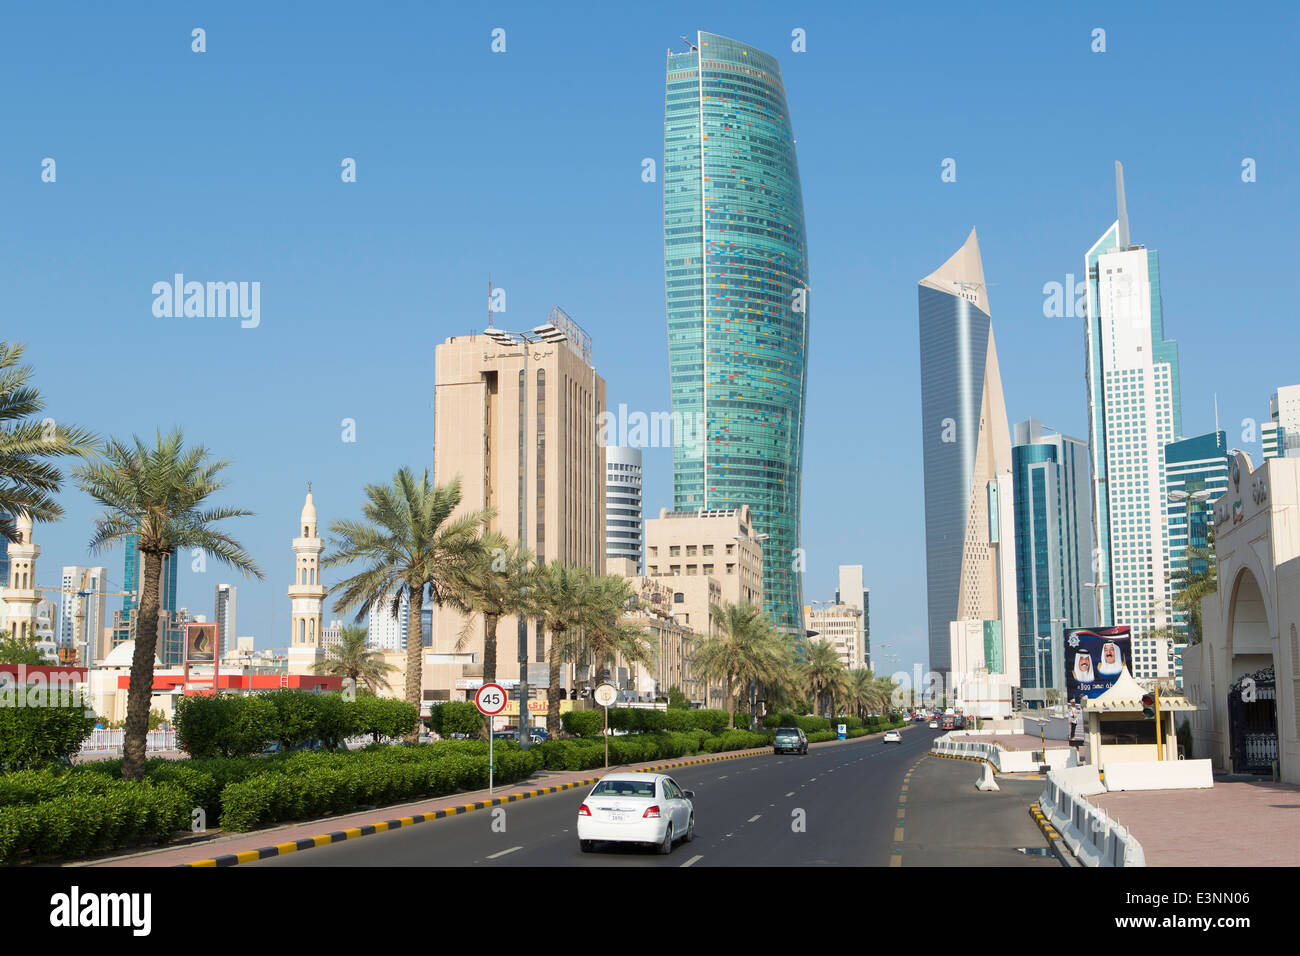 Kuwait, city skyline and central business district, elevated view - Stock Image